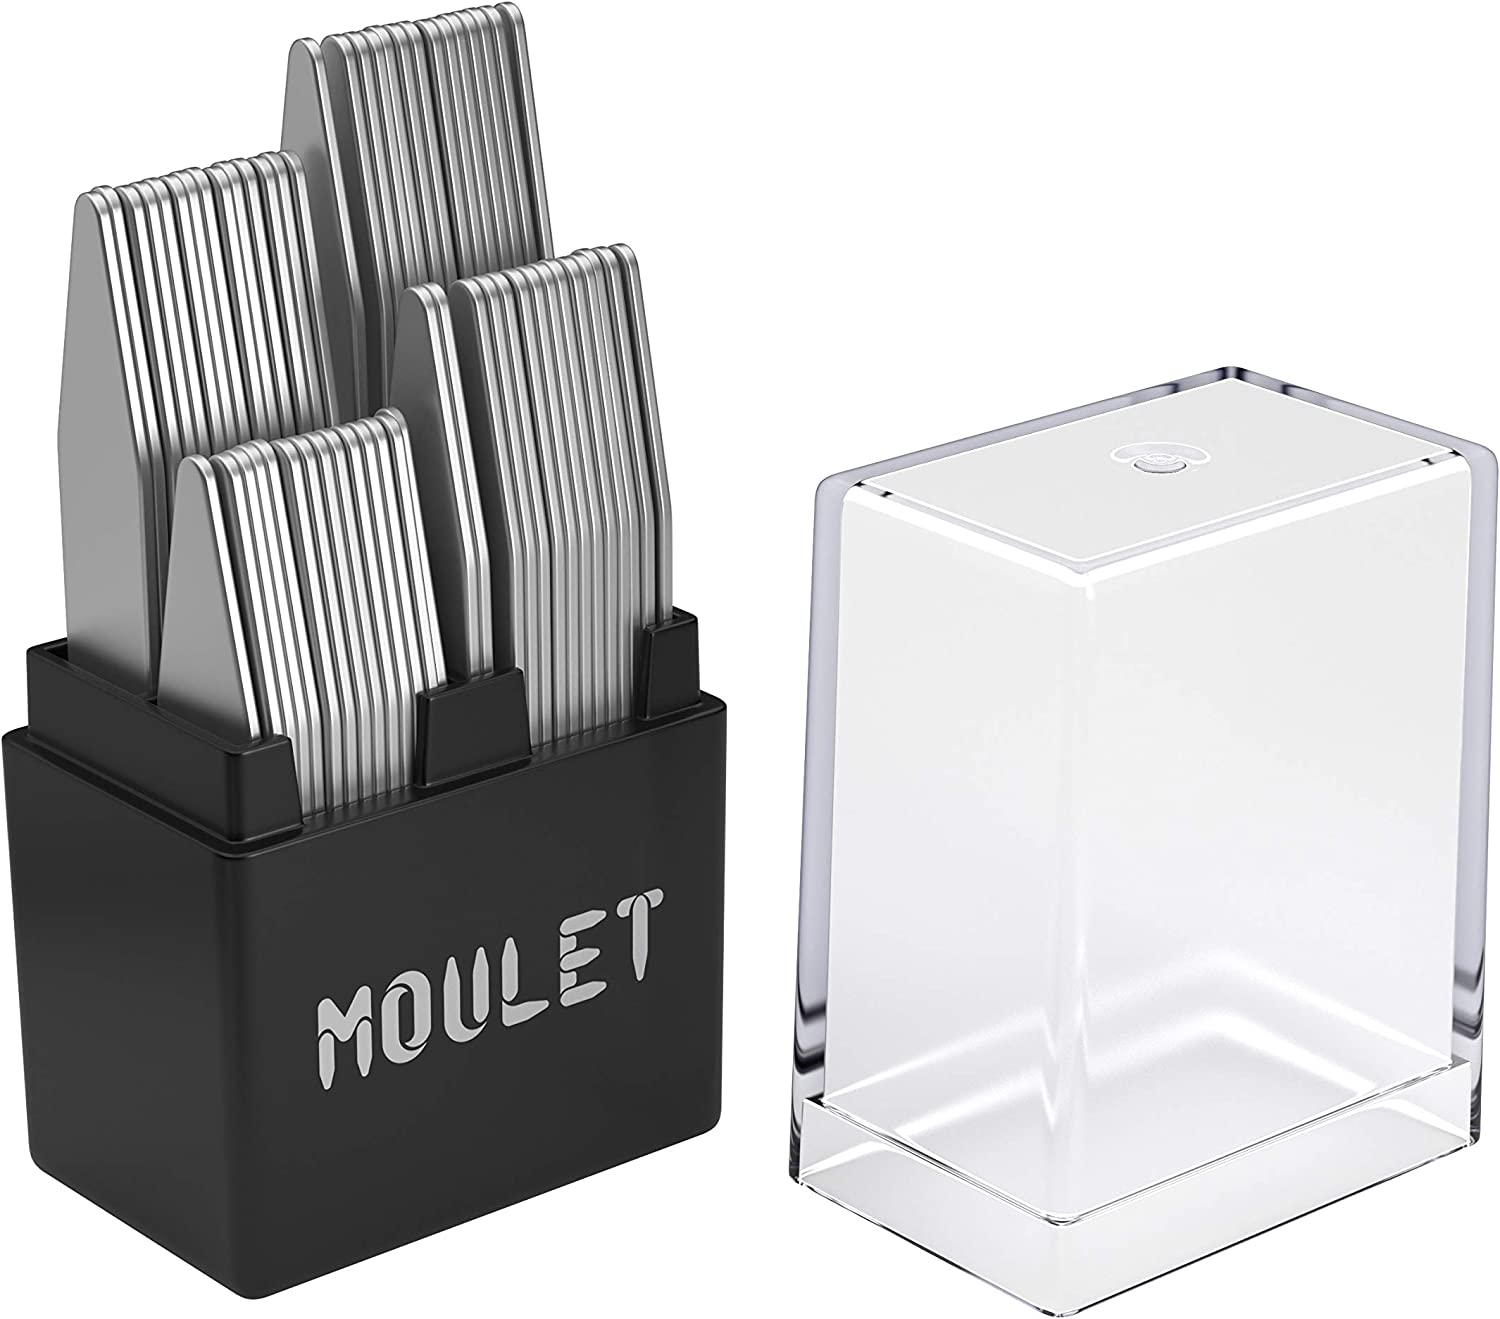 56 Metal Collar Stays for Men in a Divided Box - 4 Sizes by Moulet